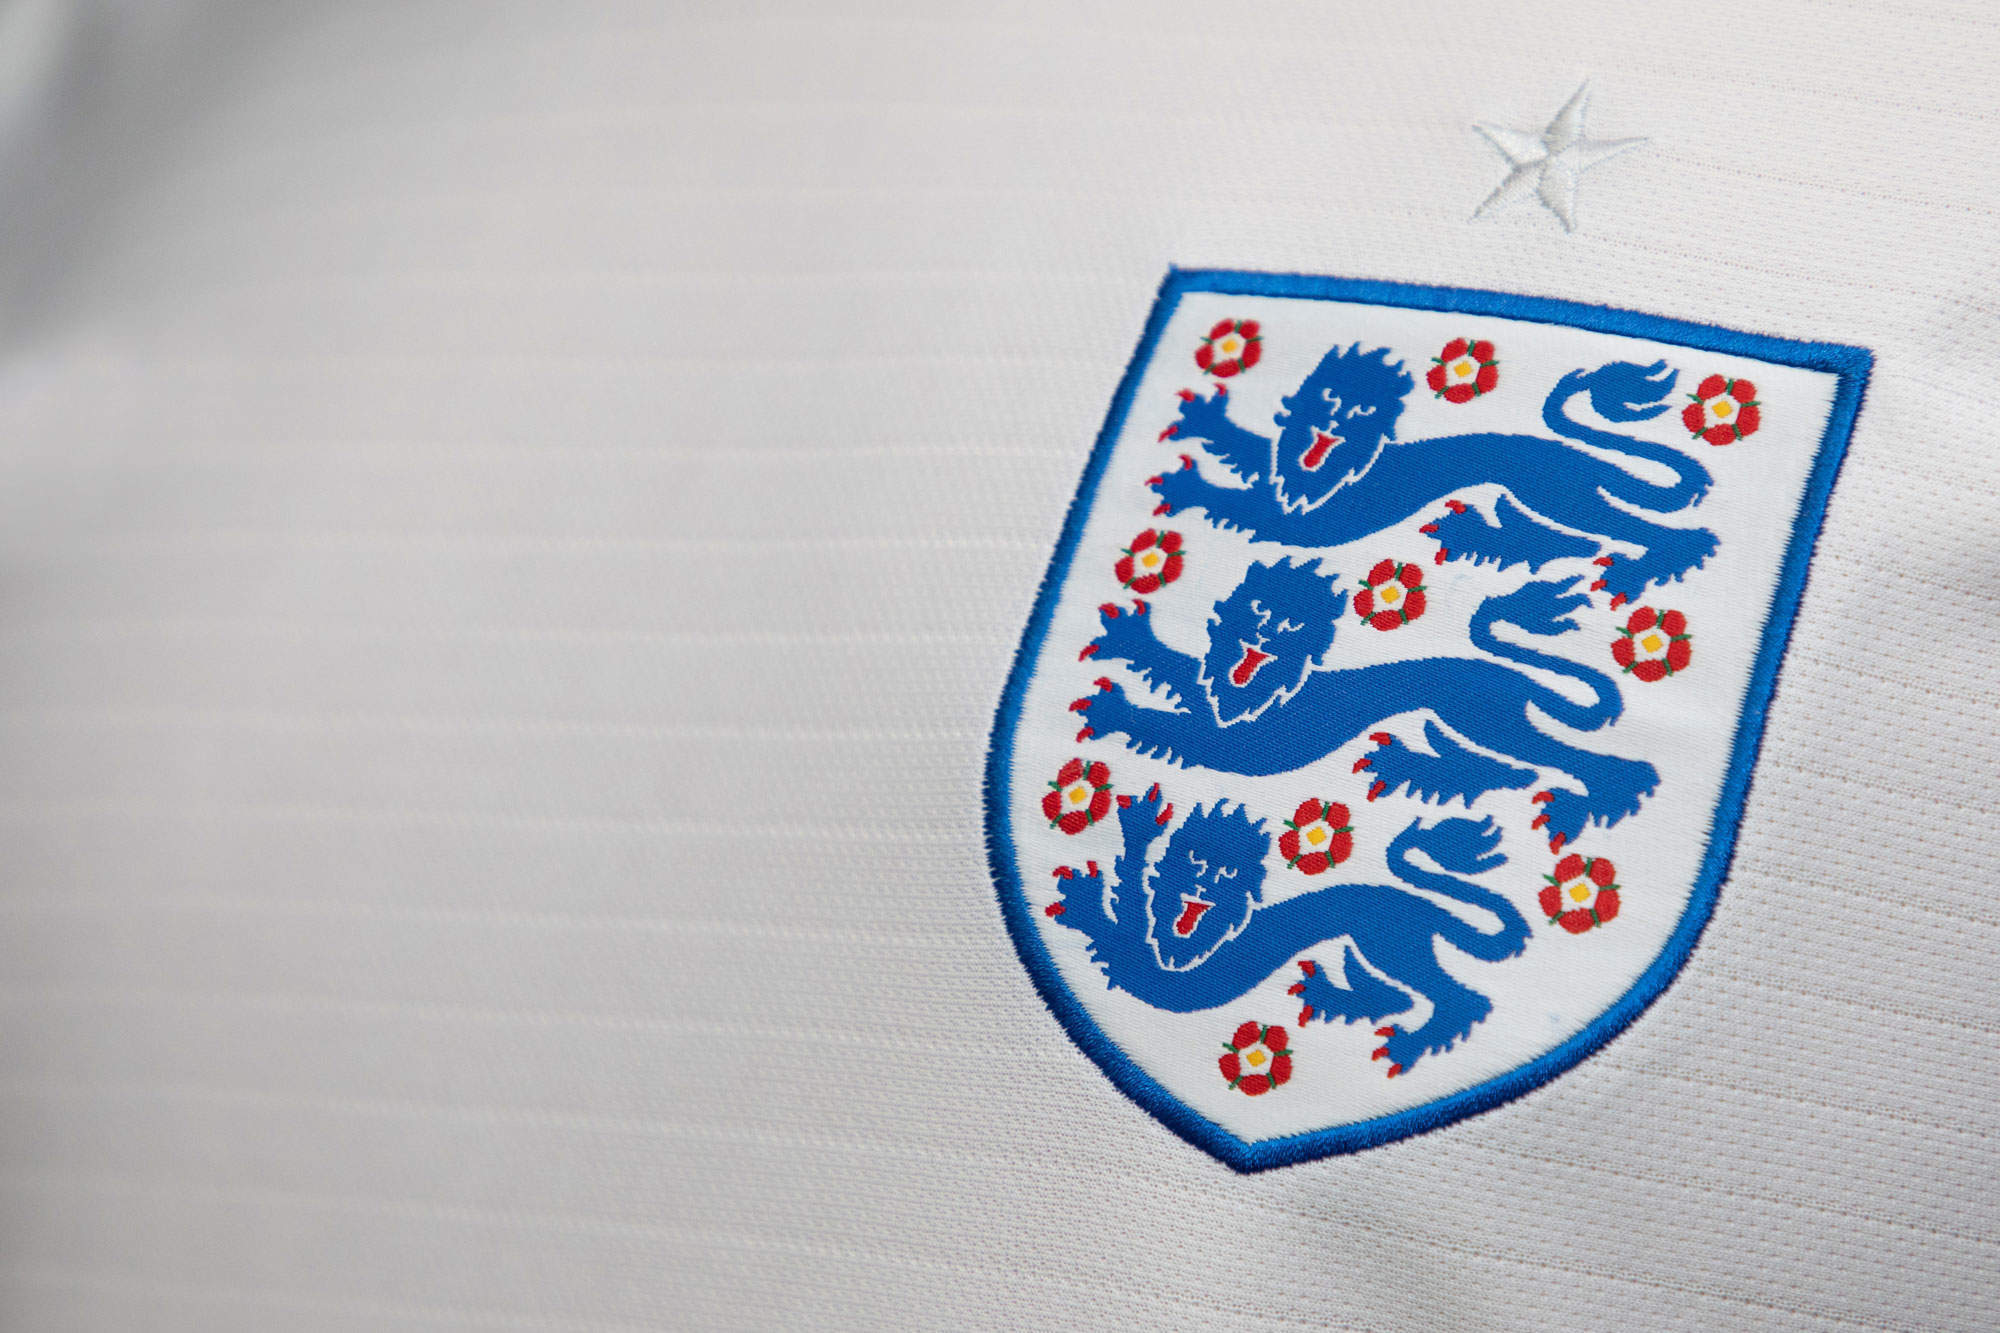 Football's coming home: England fans' optimism highest in Google's history